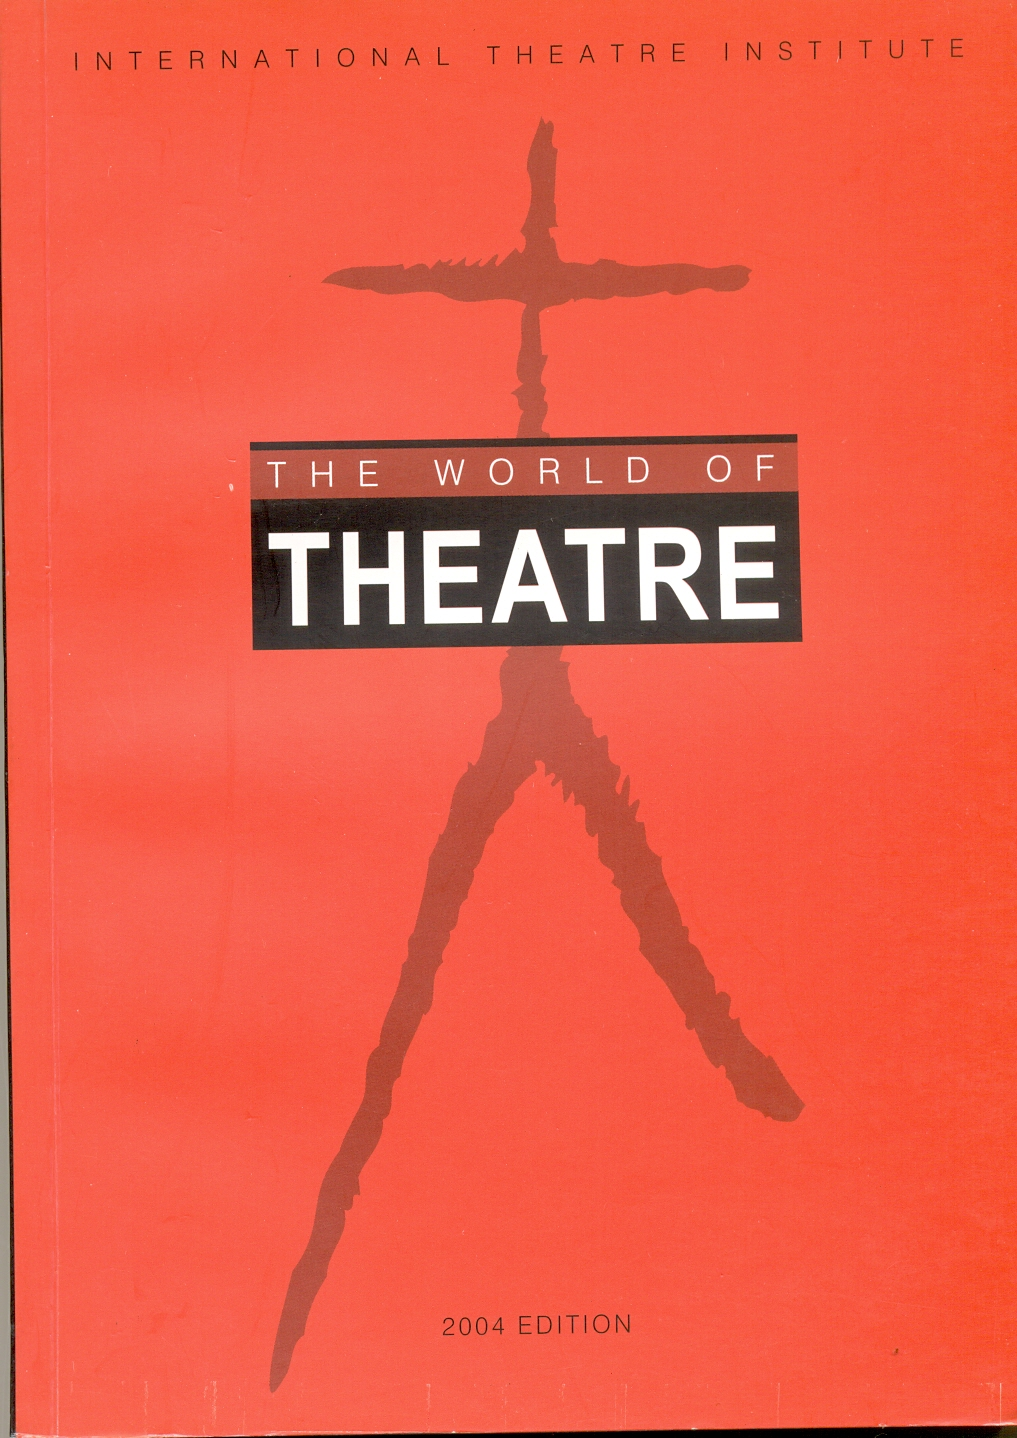 The World of Theatre 2004 Edition Image